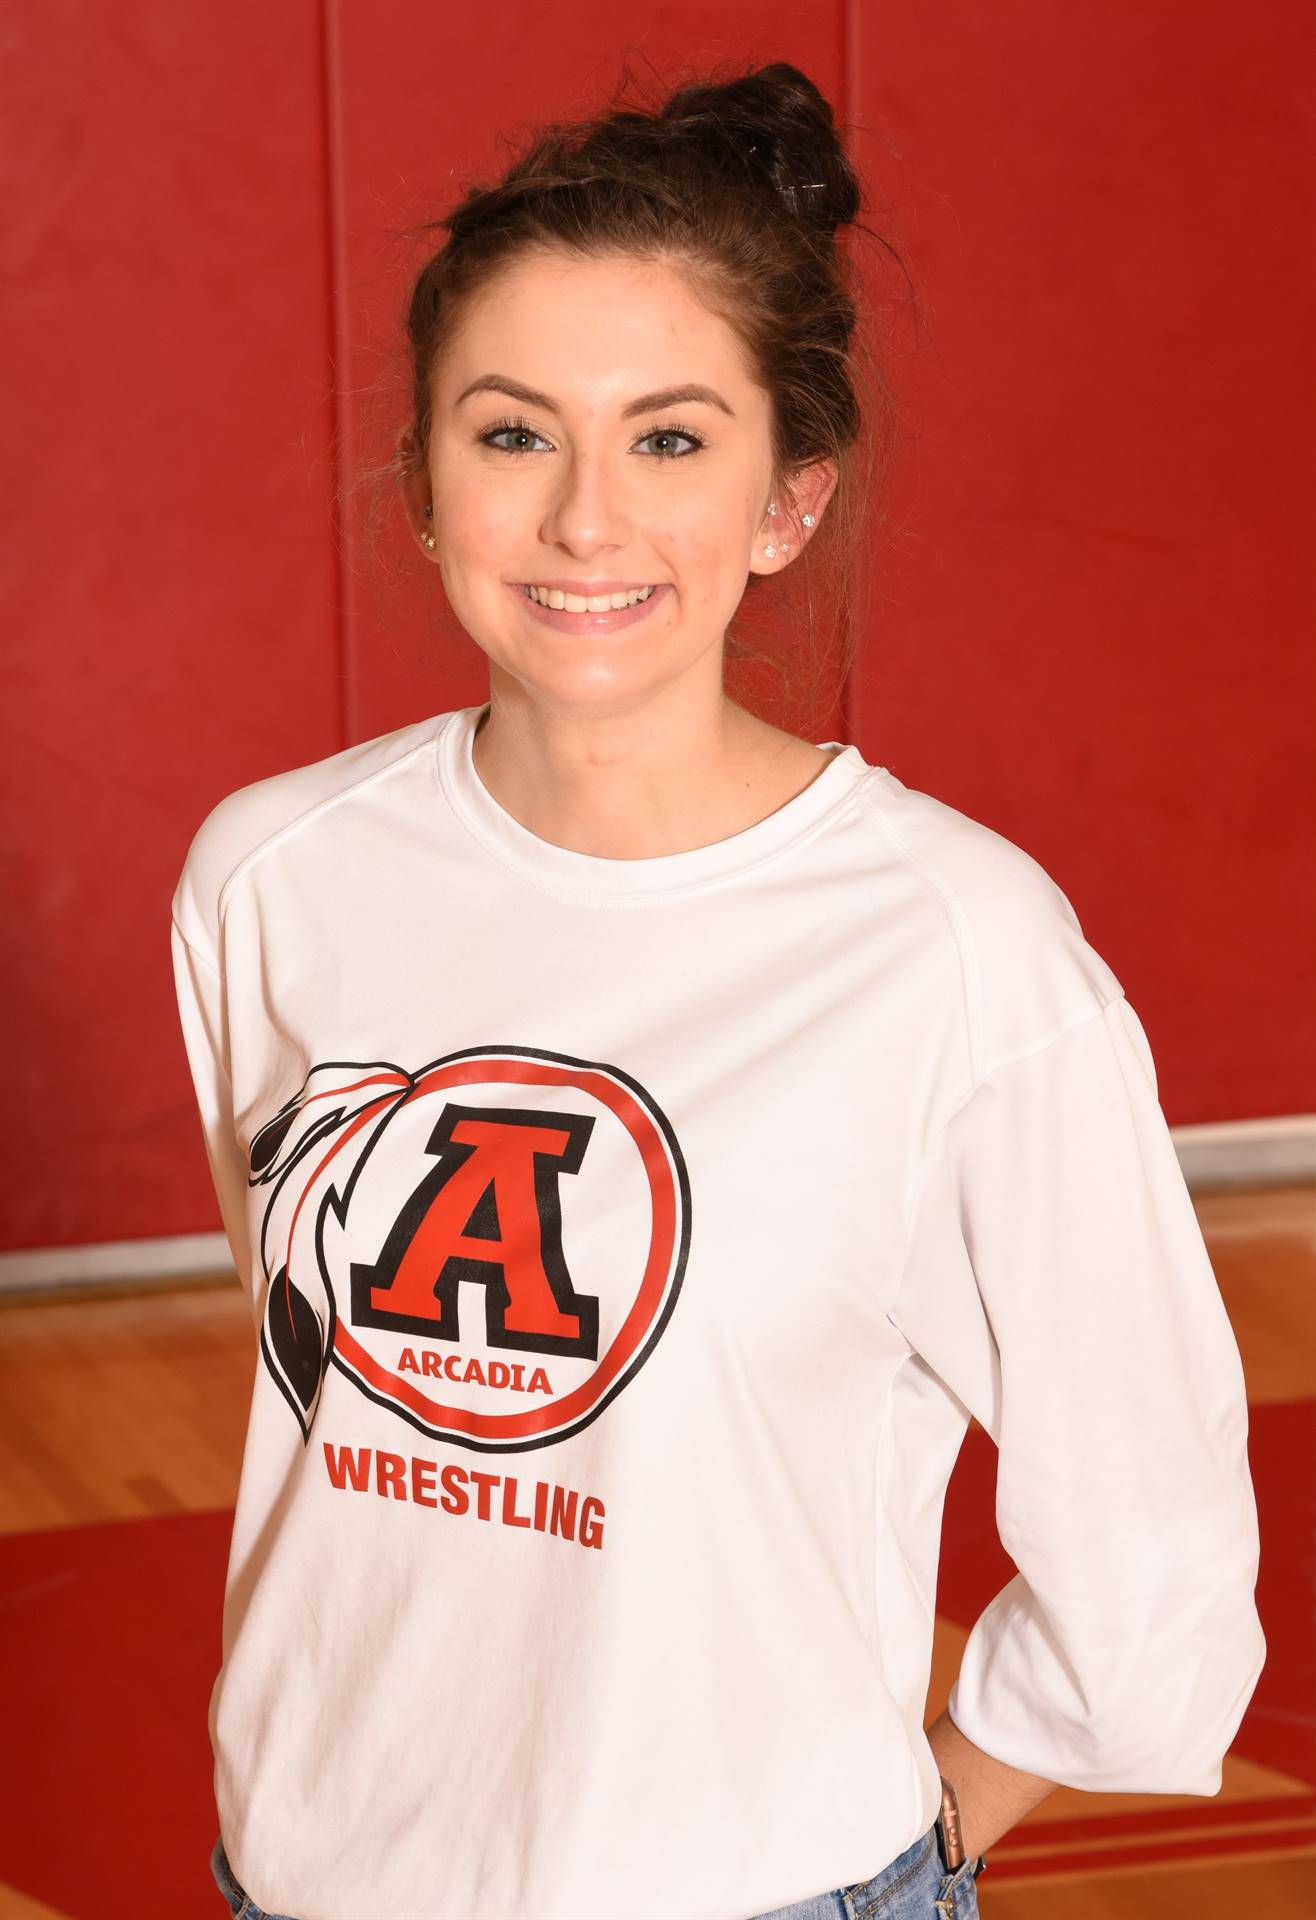 Senior Wrestling Mat Maid Alyssa Clagg